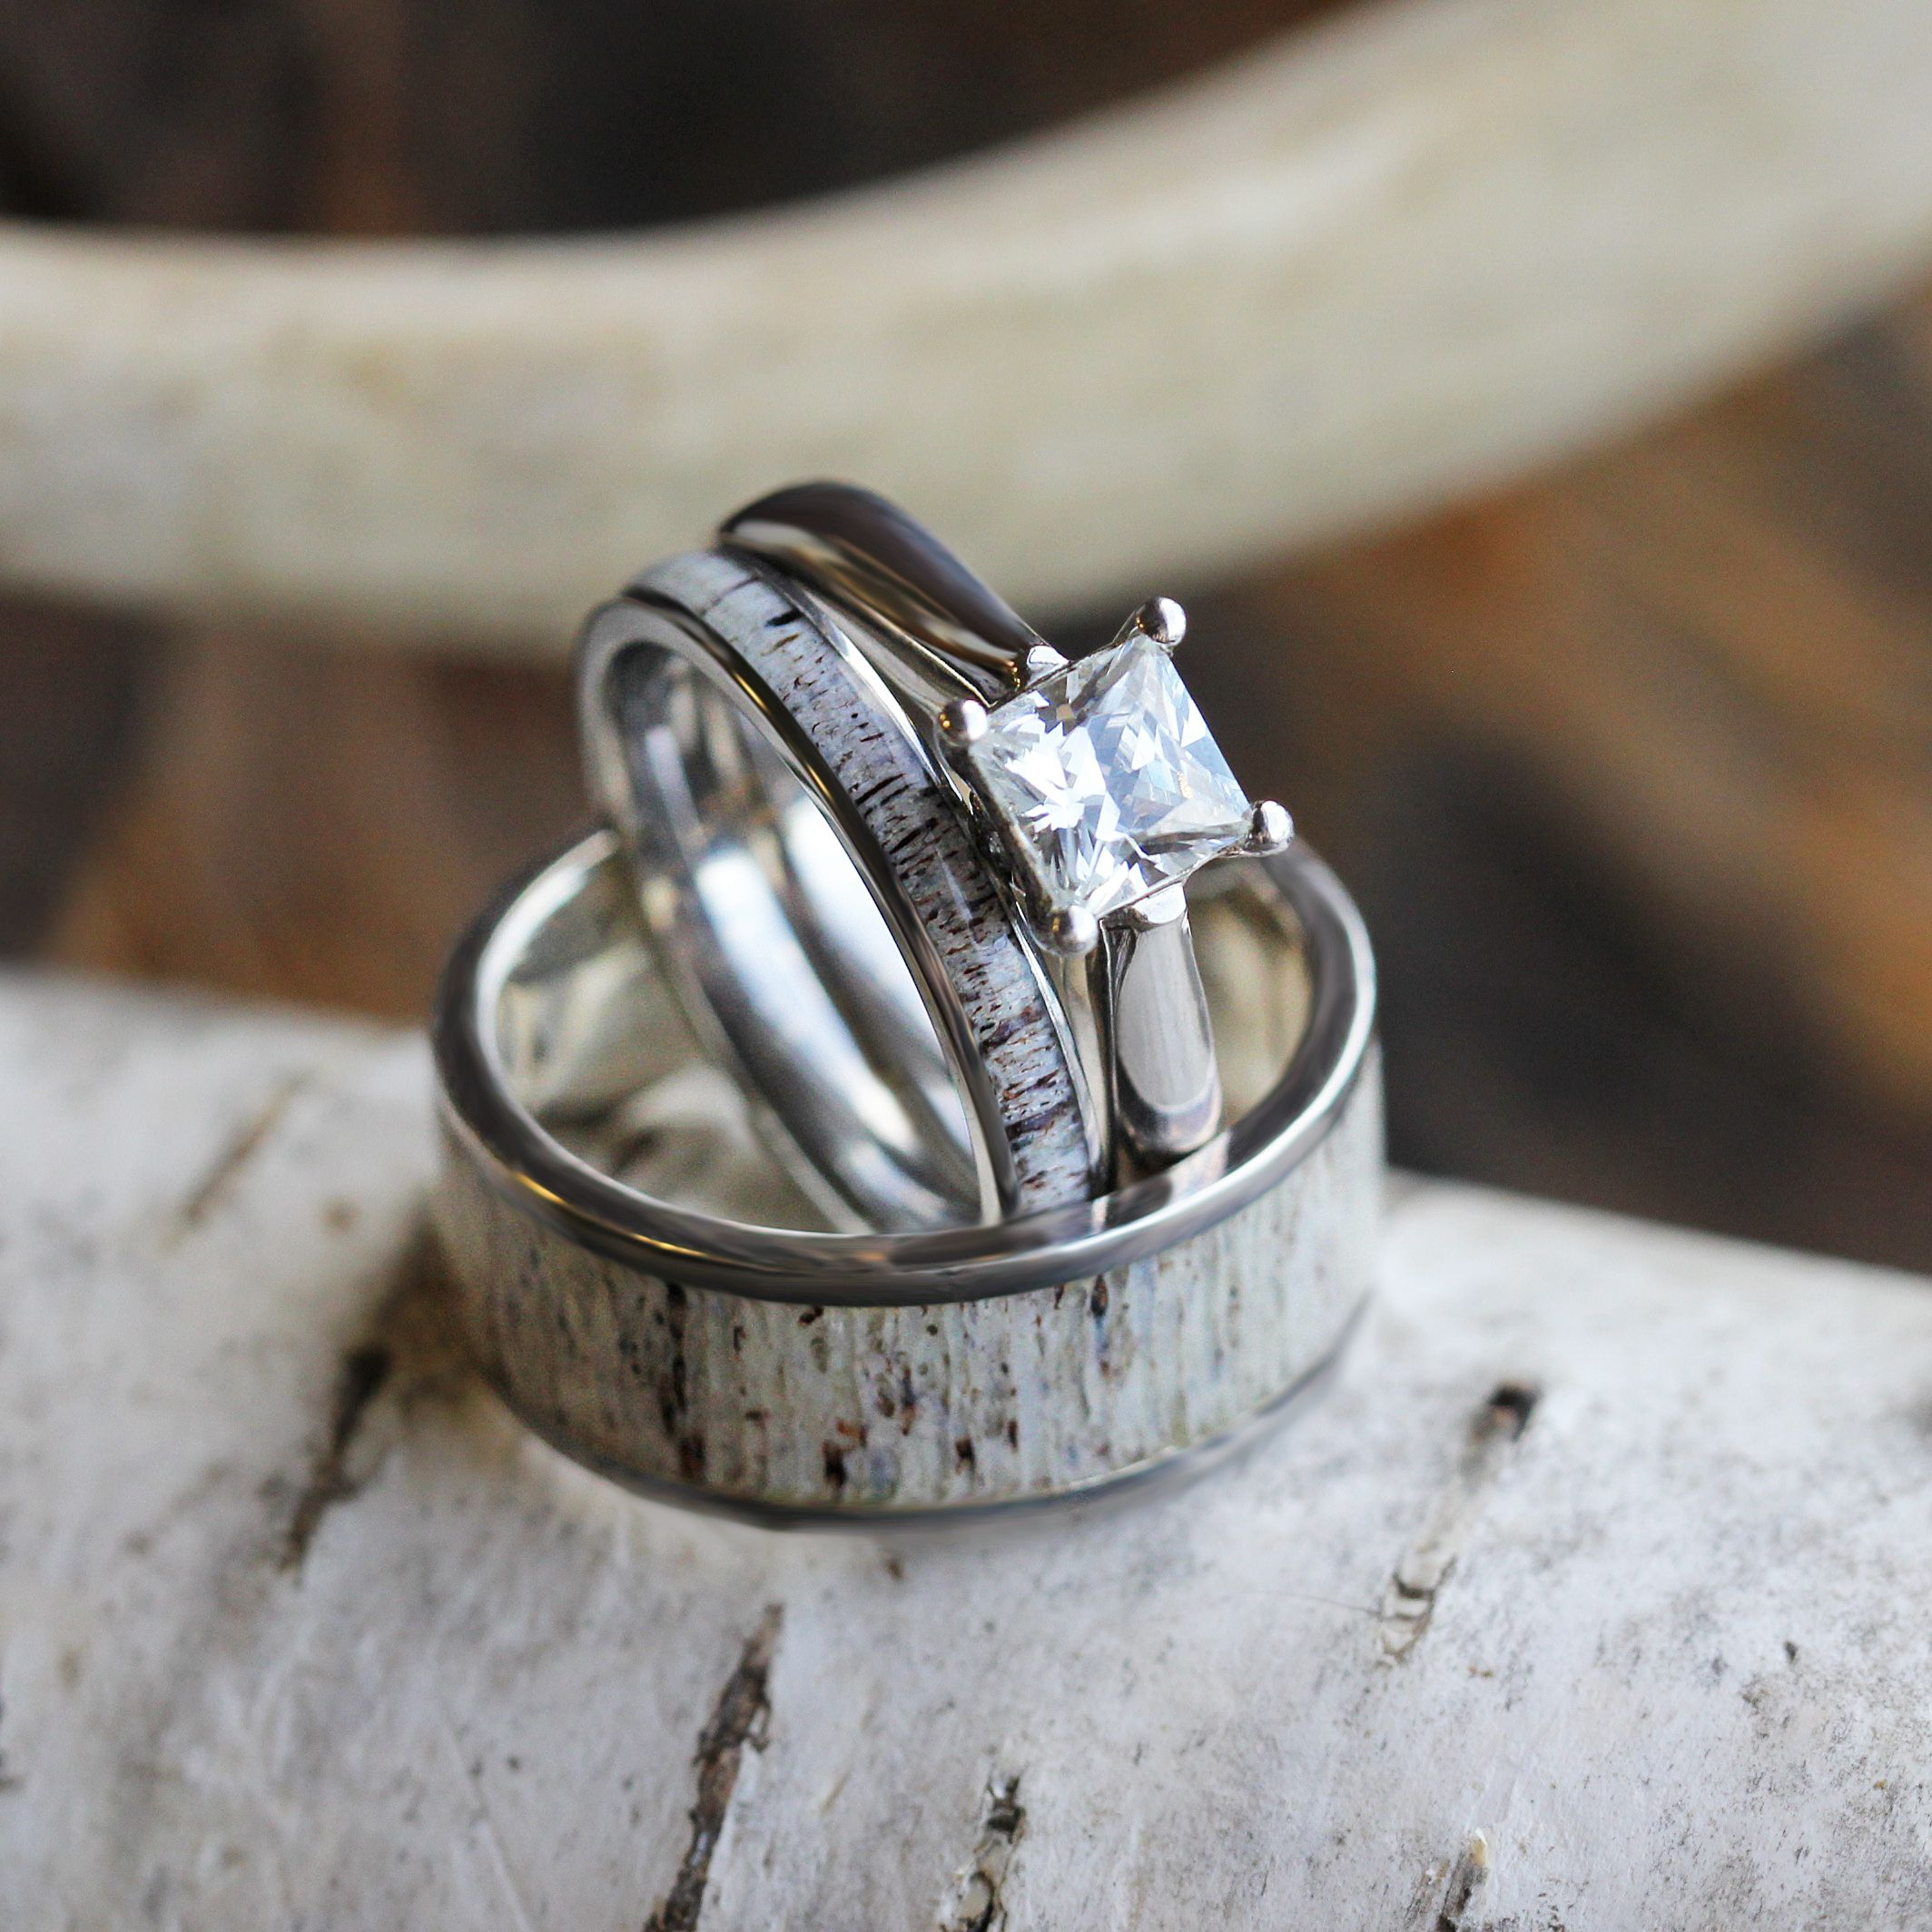 deer antler wedding ring set his and hers matching wedding bands - Deer Antler Wedding Rings